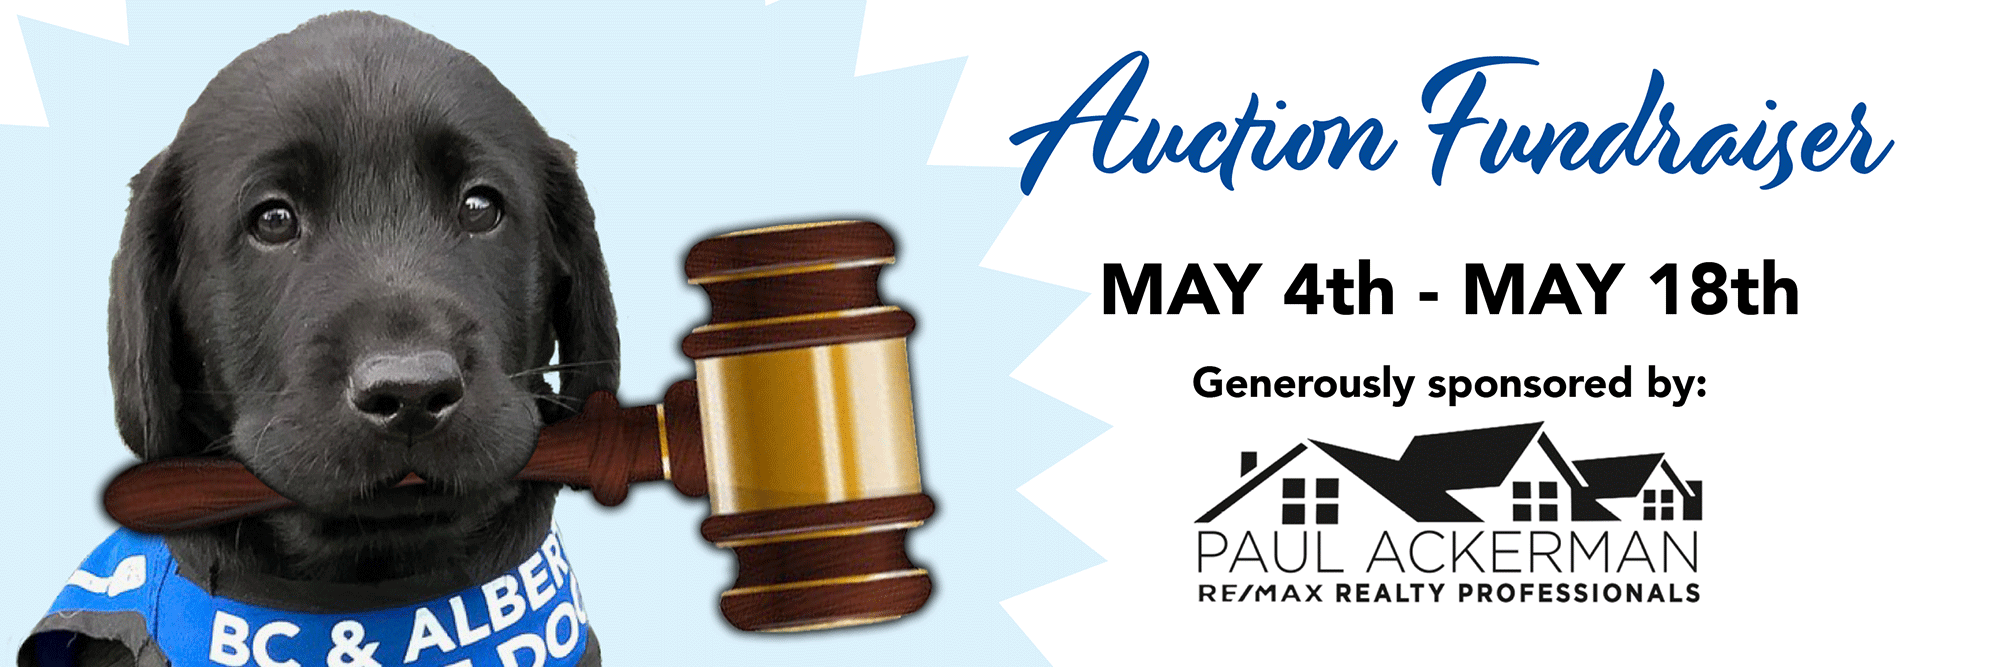 Online Silent Auction Fundraiser Runs May 4th to May 18th